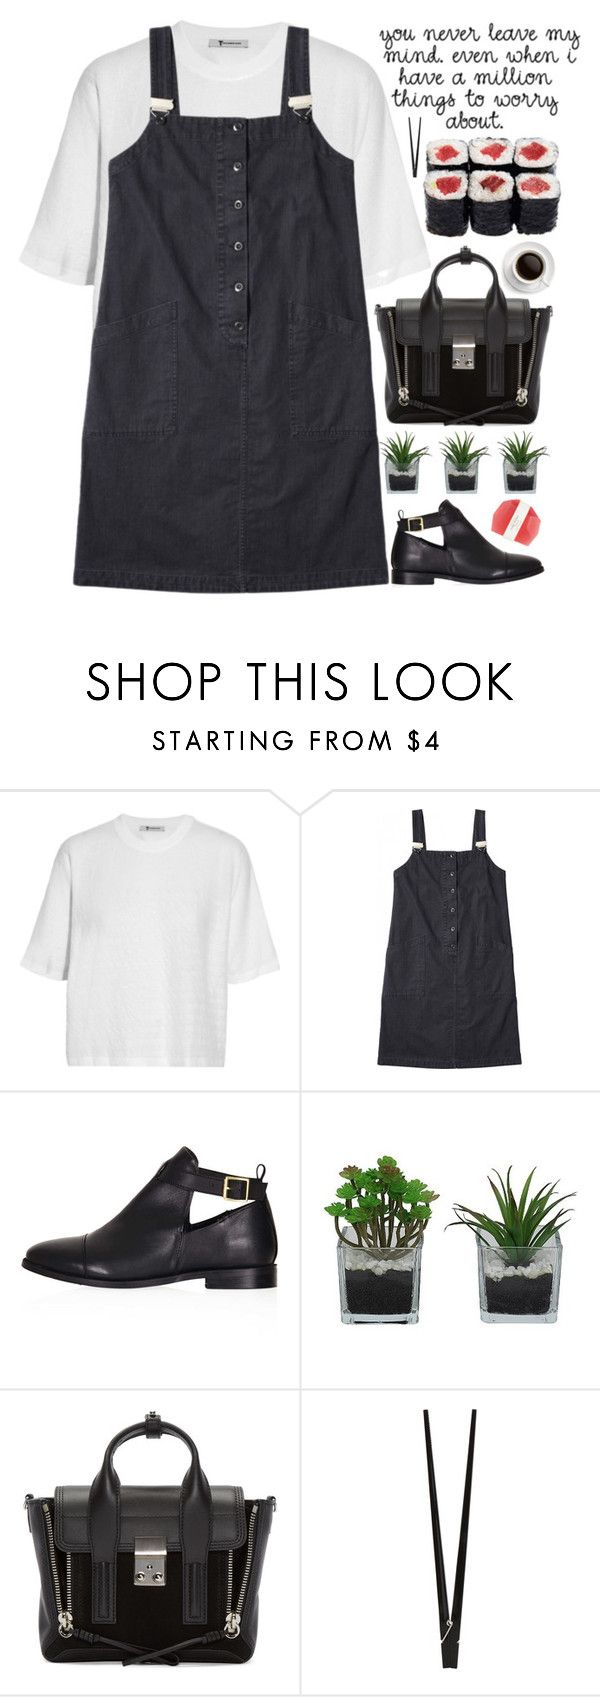 """""""never leave my mind"""" by evangeline-lily ❤ liked on Polyvore featuring T By Alexander Wang, Topshop, Threshold, 3.1 Phillip Lim, CB2, Pelle, AlexanderWang, topshop and spring2016"""